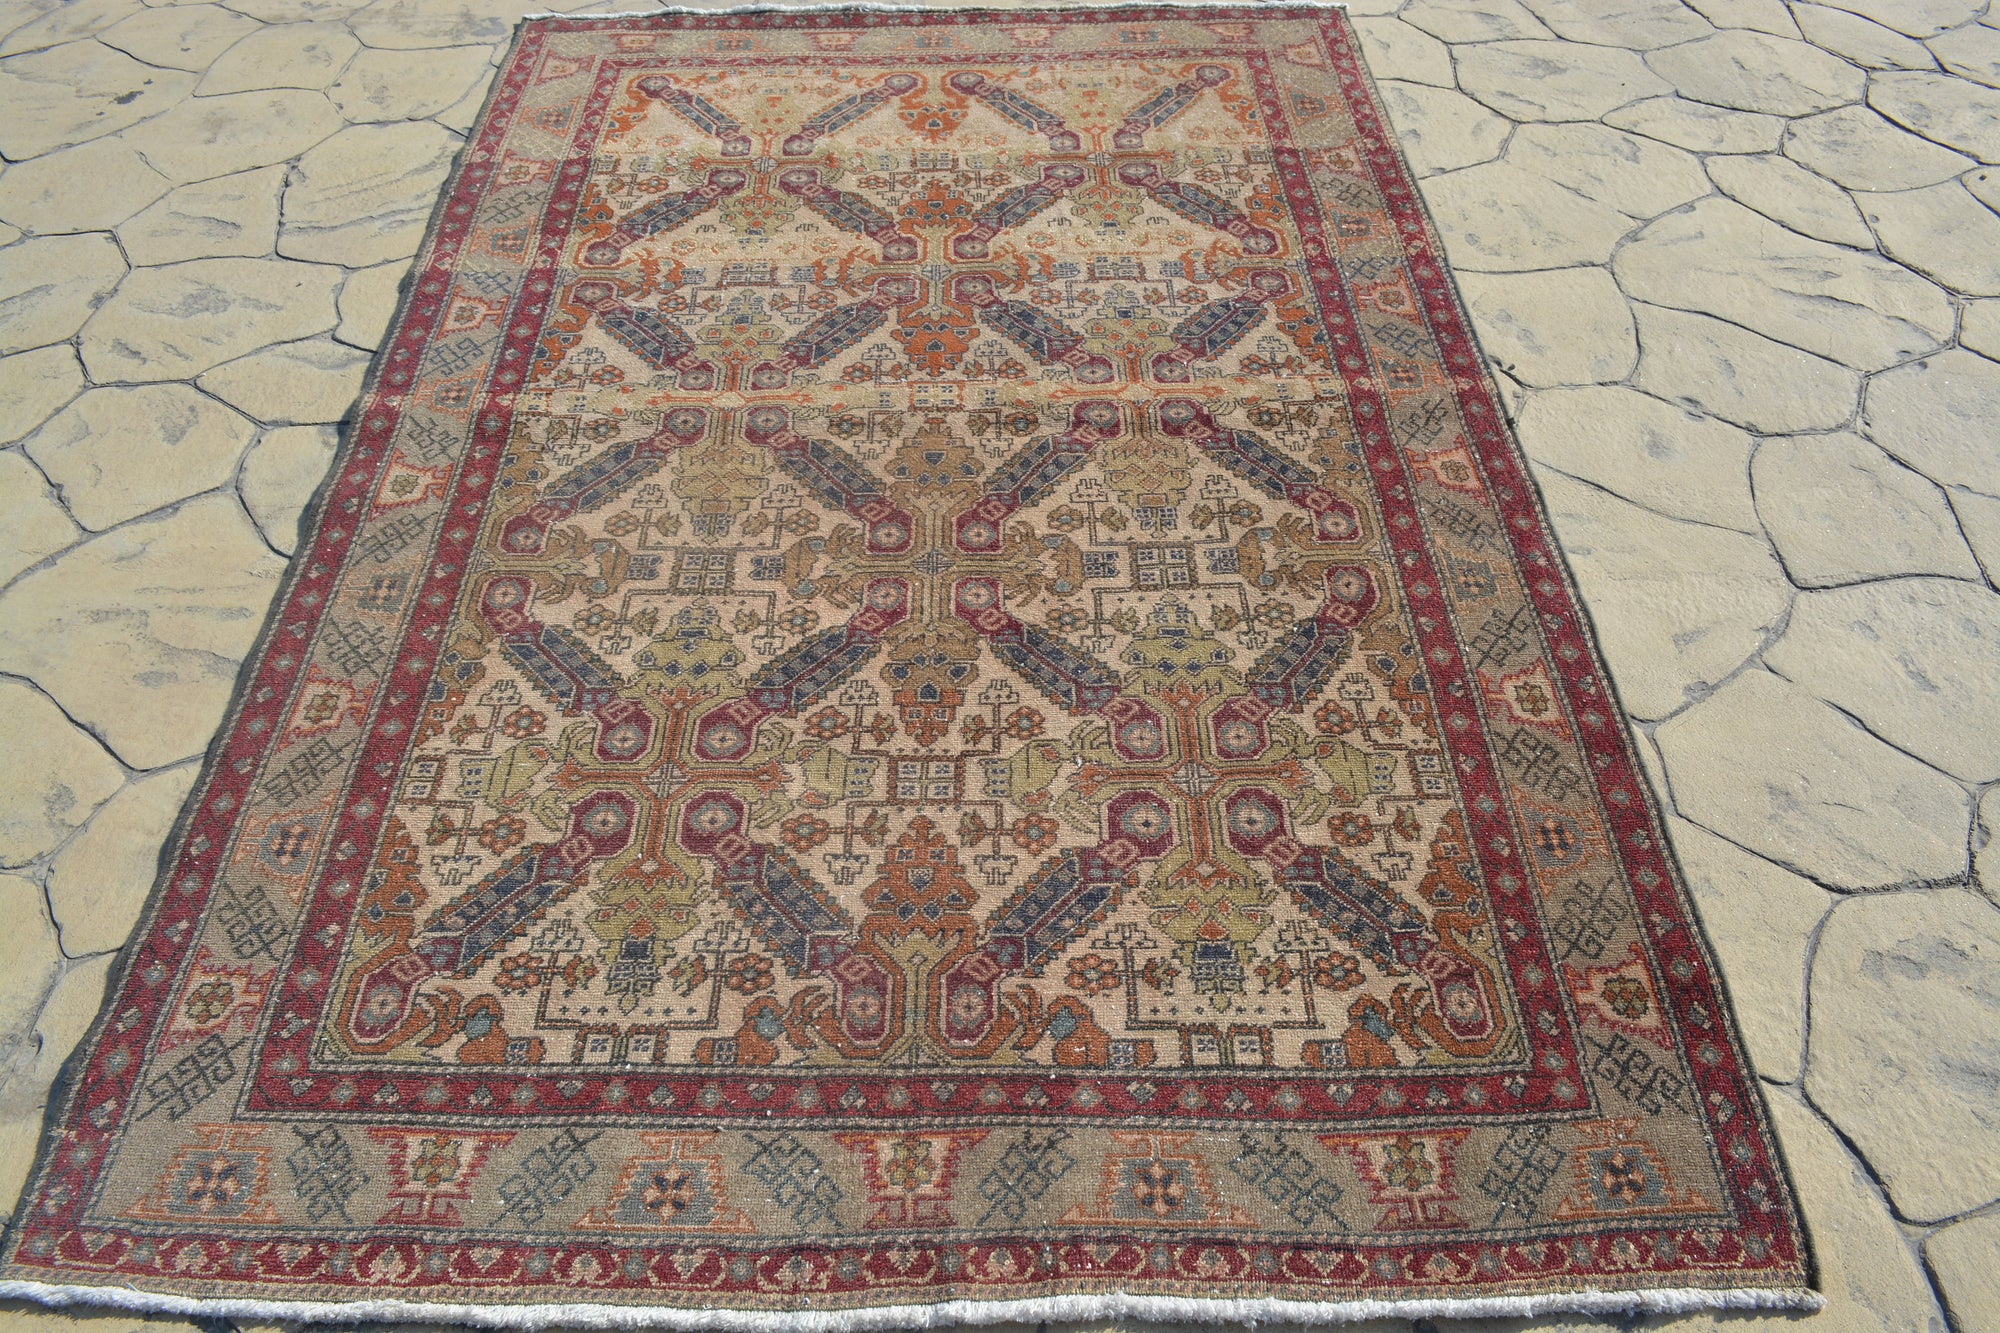 Turkish Carpet Floor Rugs, Modern Rug, Home Living, Beige Woven Rug, Home Decoration  Floor Rugs, Oushak Turkish Rugs, 4.5x7.2 Feet AG381